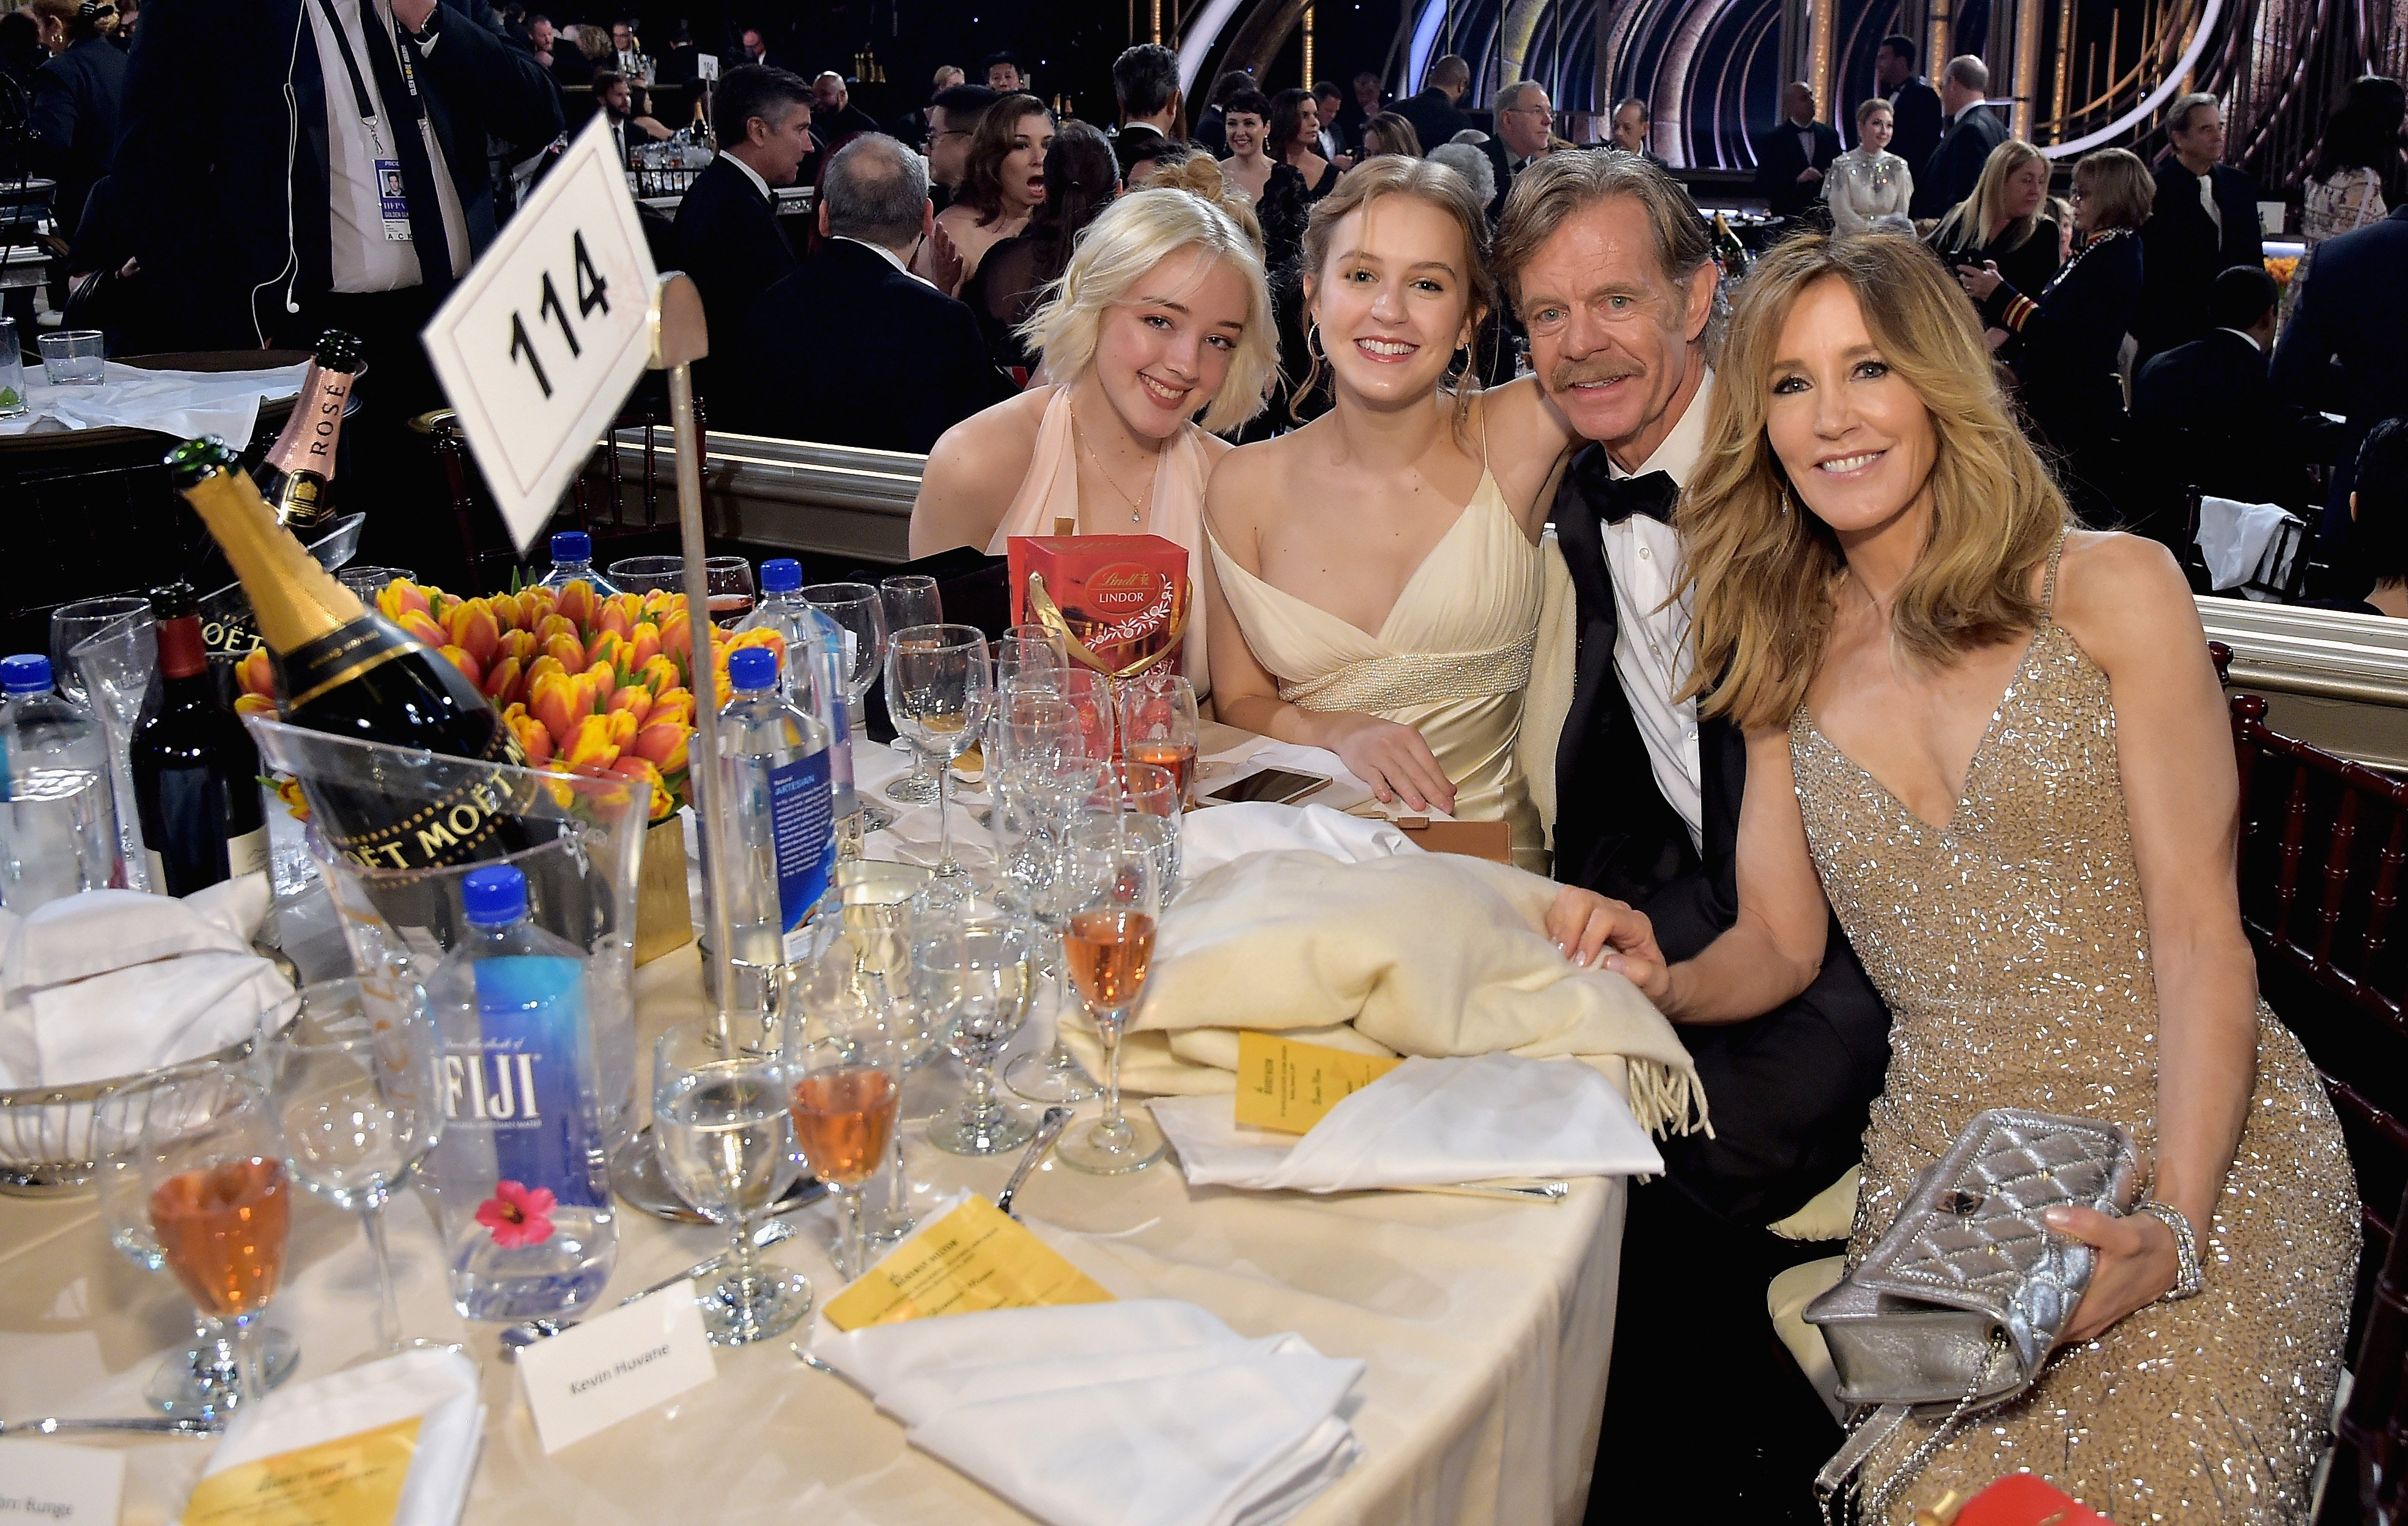 Sofia Macy, Georgia Macy, William H. Macy, and Felicity Huffman at the 76th Annual Golden Globe Awards on January 6, 2019 | Photo: GettyImages